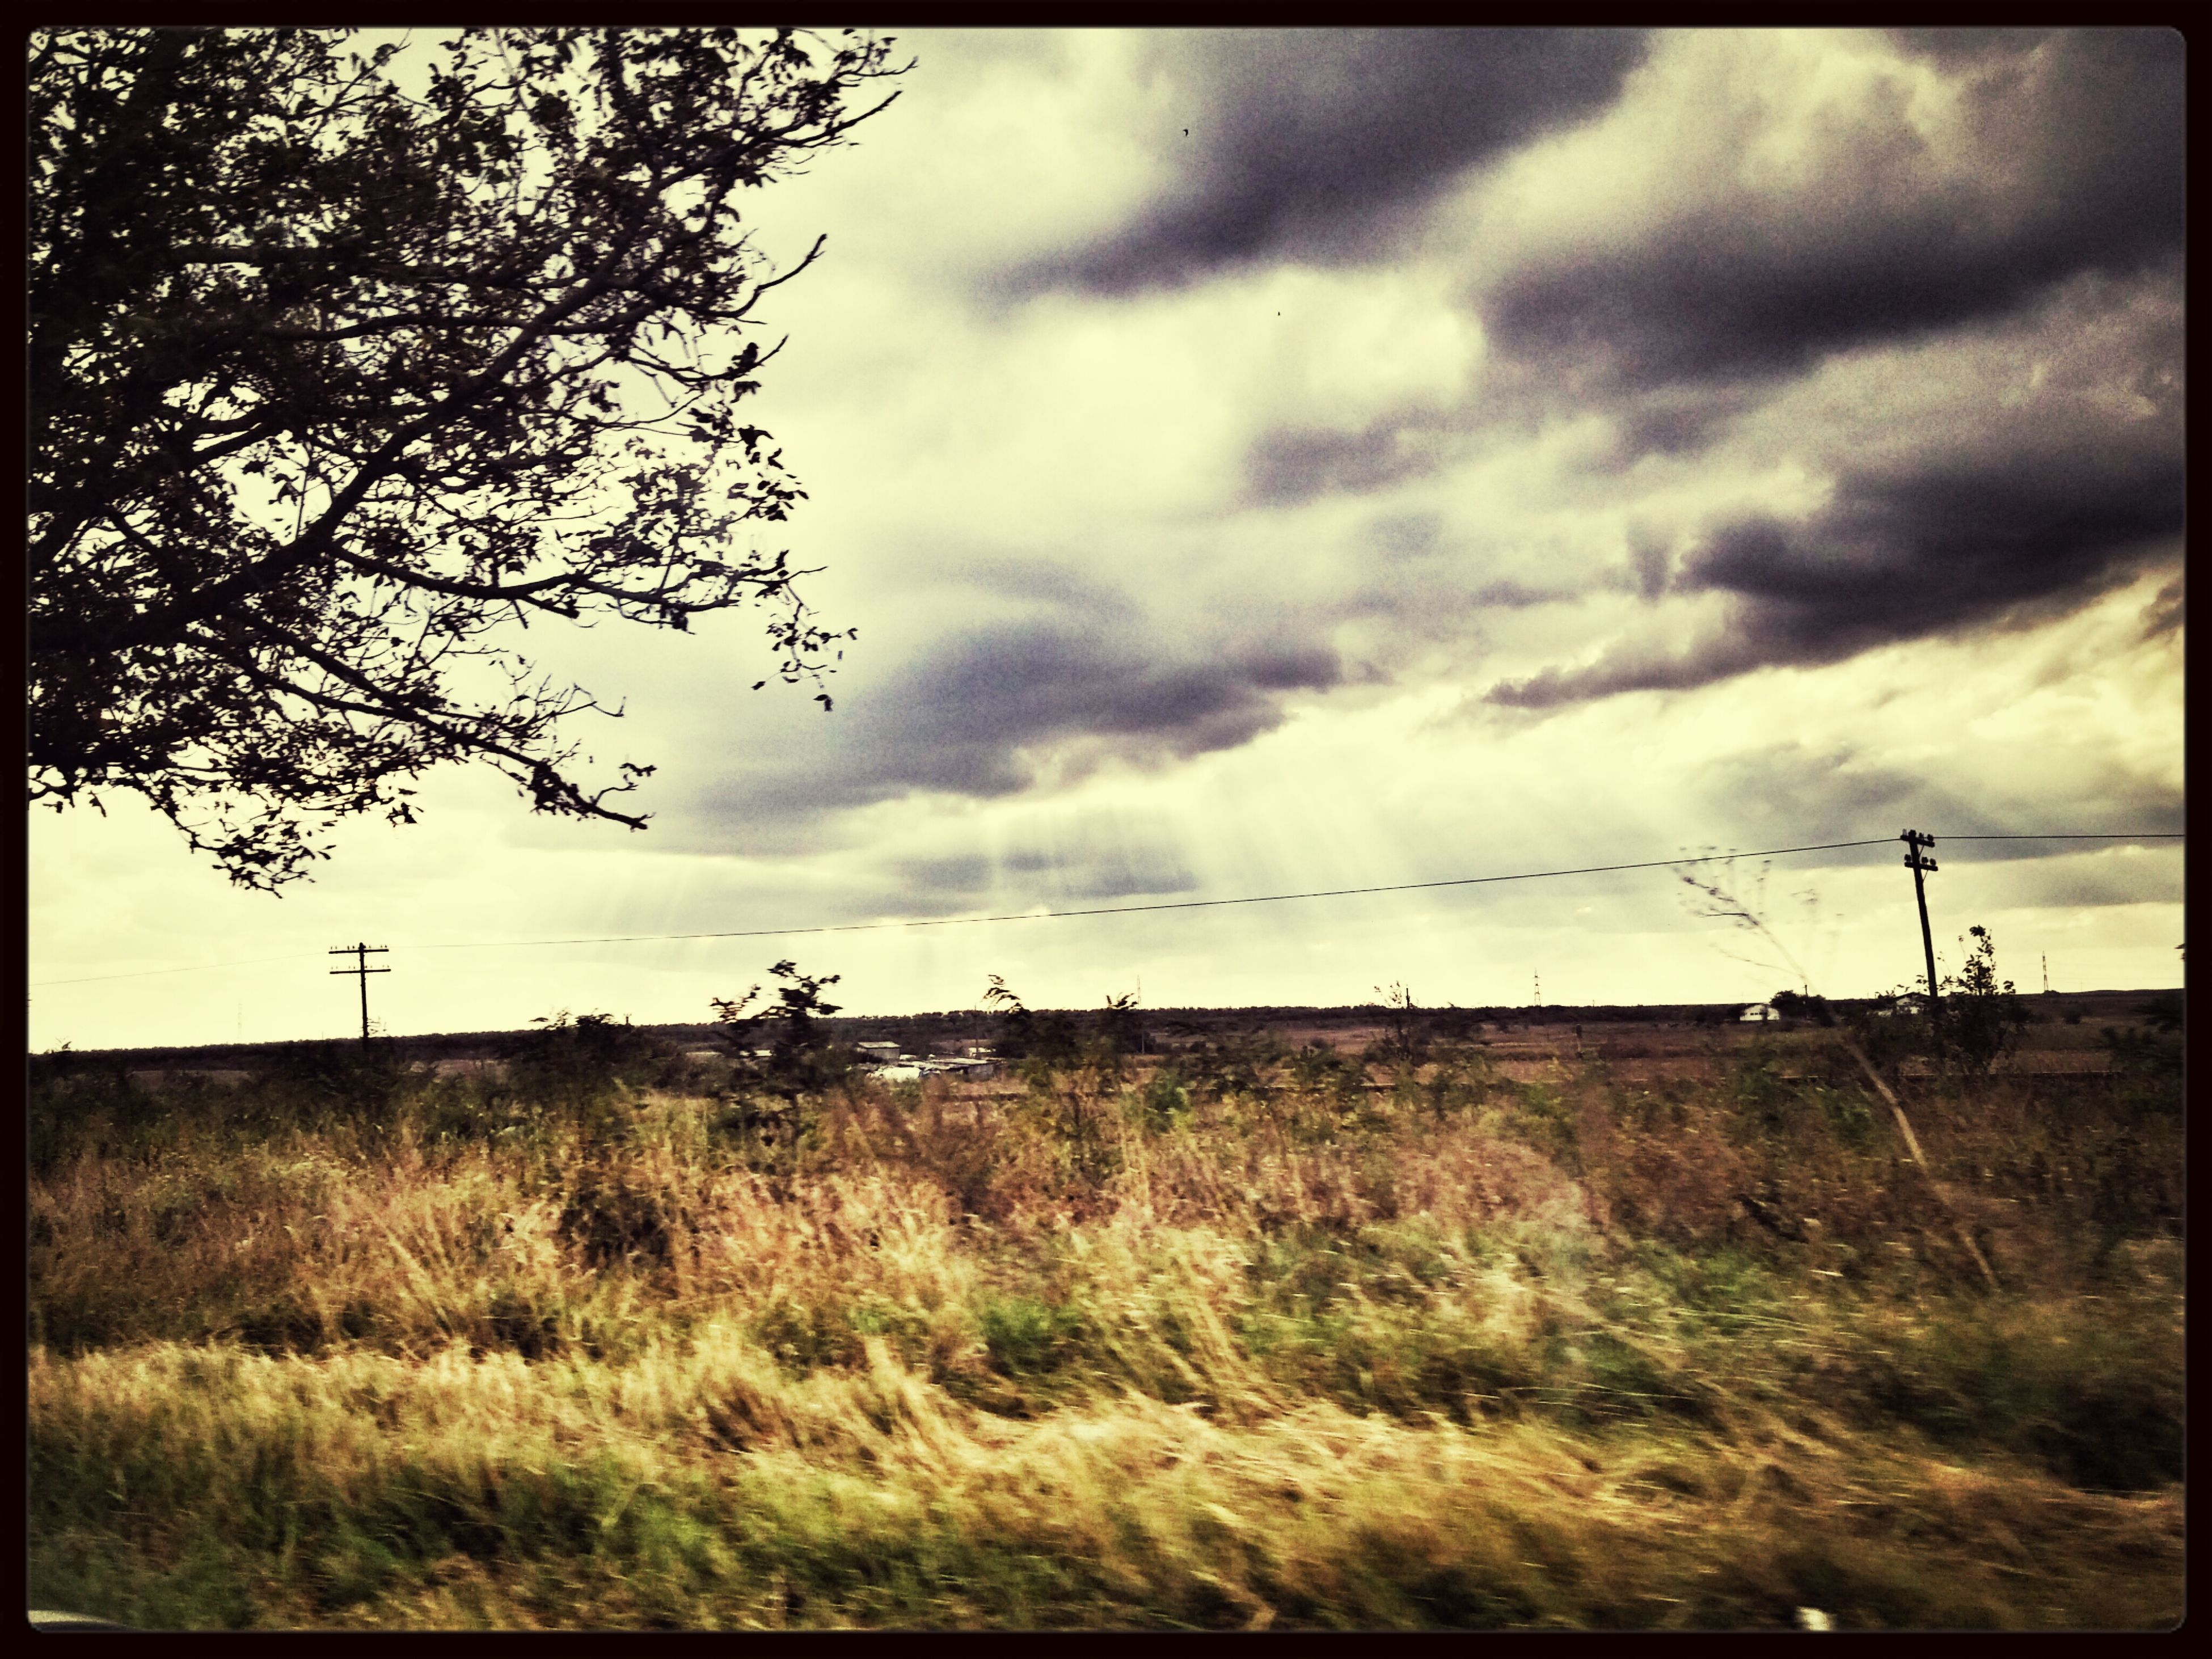 sky, transfer print, grass, field, cloud - sky, landscape, cloudy, auto post production filter, tranquil scene, tranquility, grassy, cloud, nature, scenics, beauty in nature, rural scene, overcast, non-urban scene, growth, animal themes